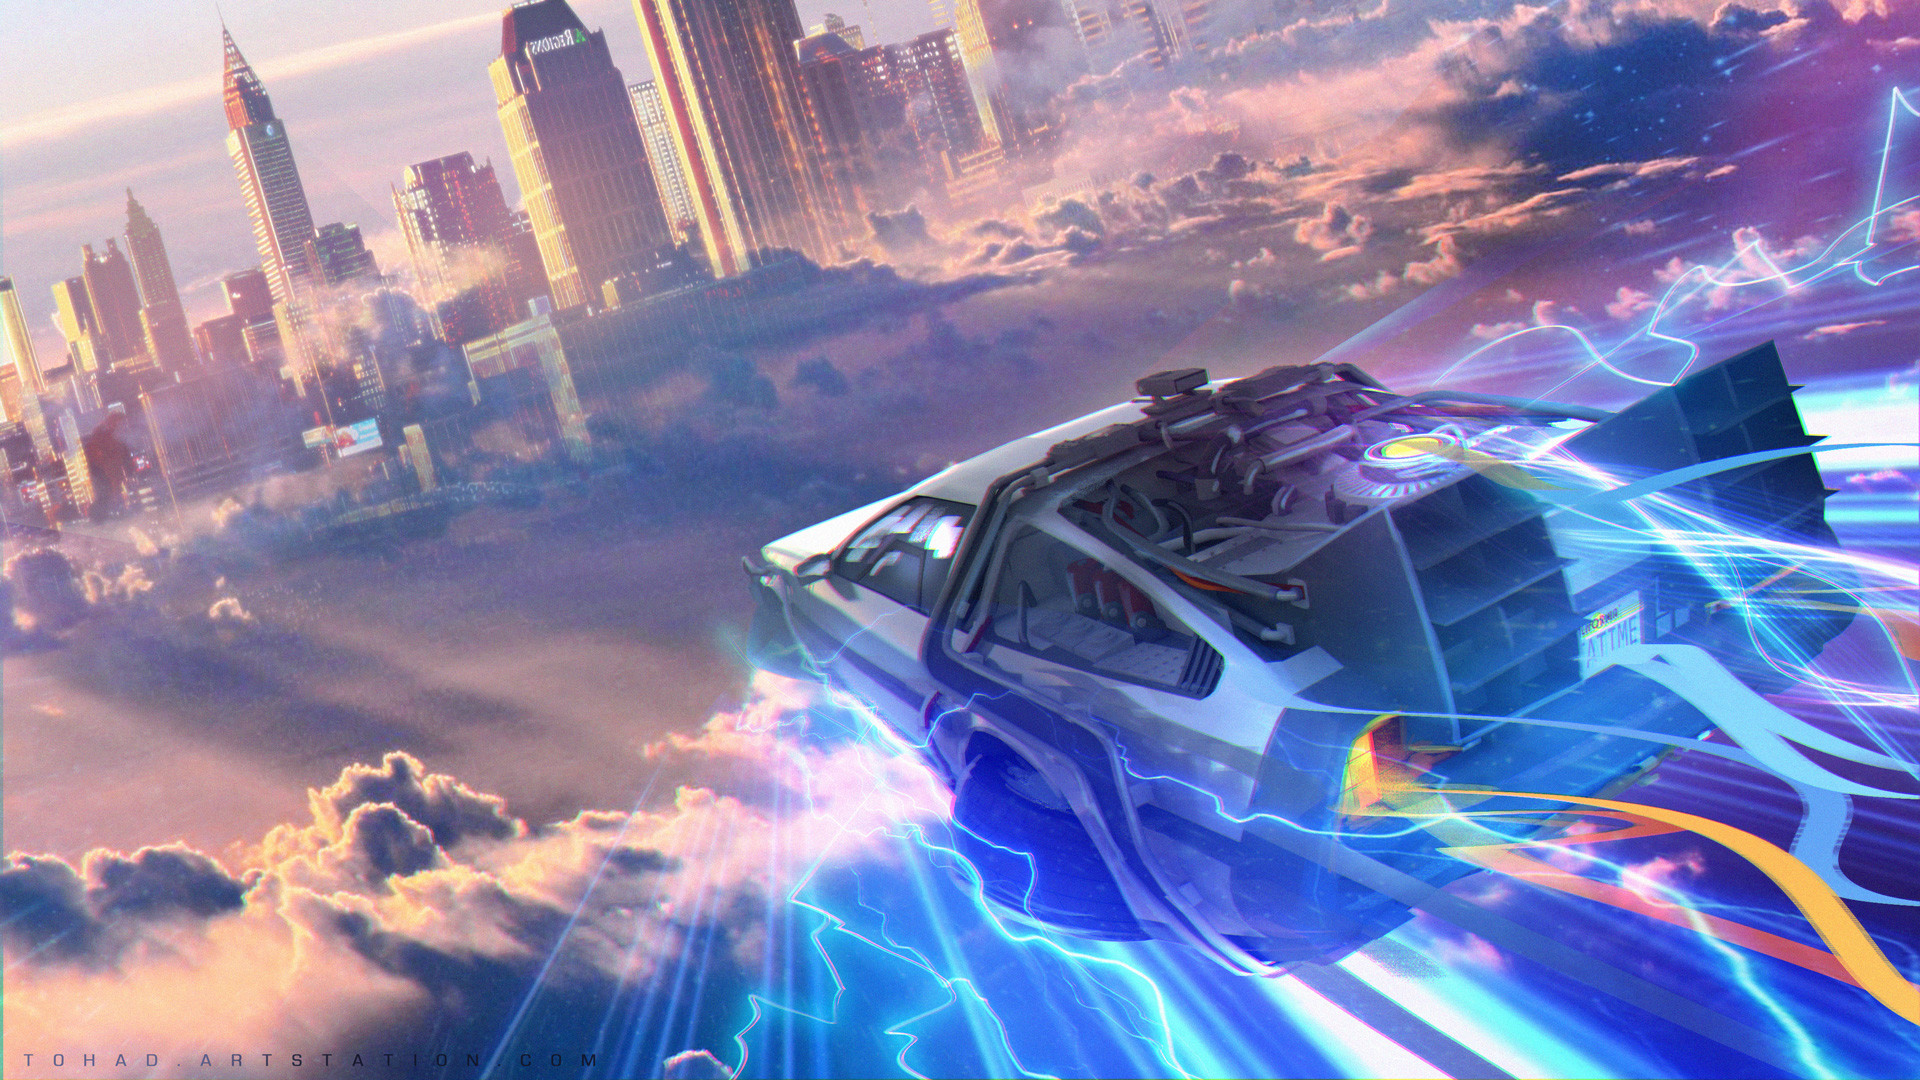 Back To The Future HD Wallpaper | Background Image | 1920x1080 | ID:890882 - Wallpaper Abyss